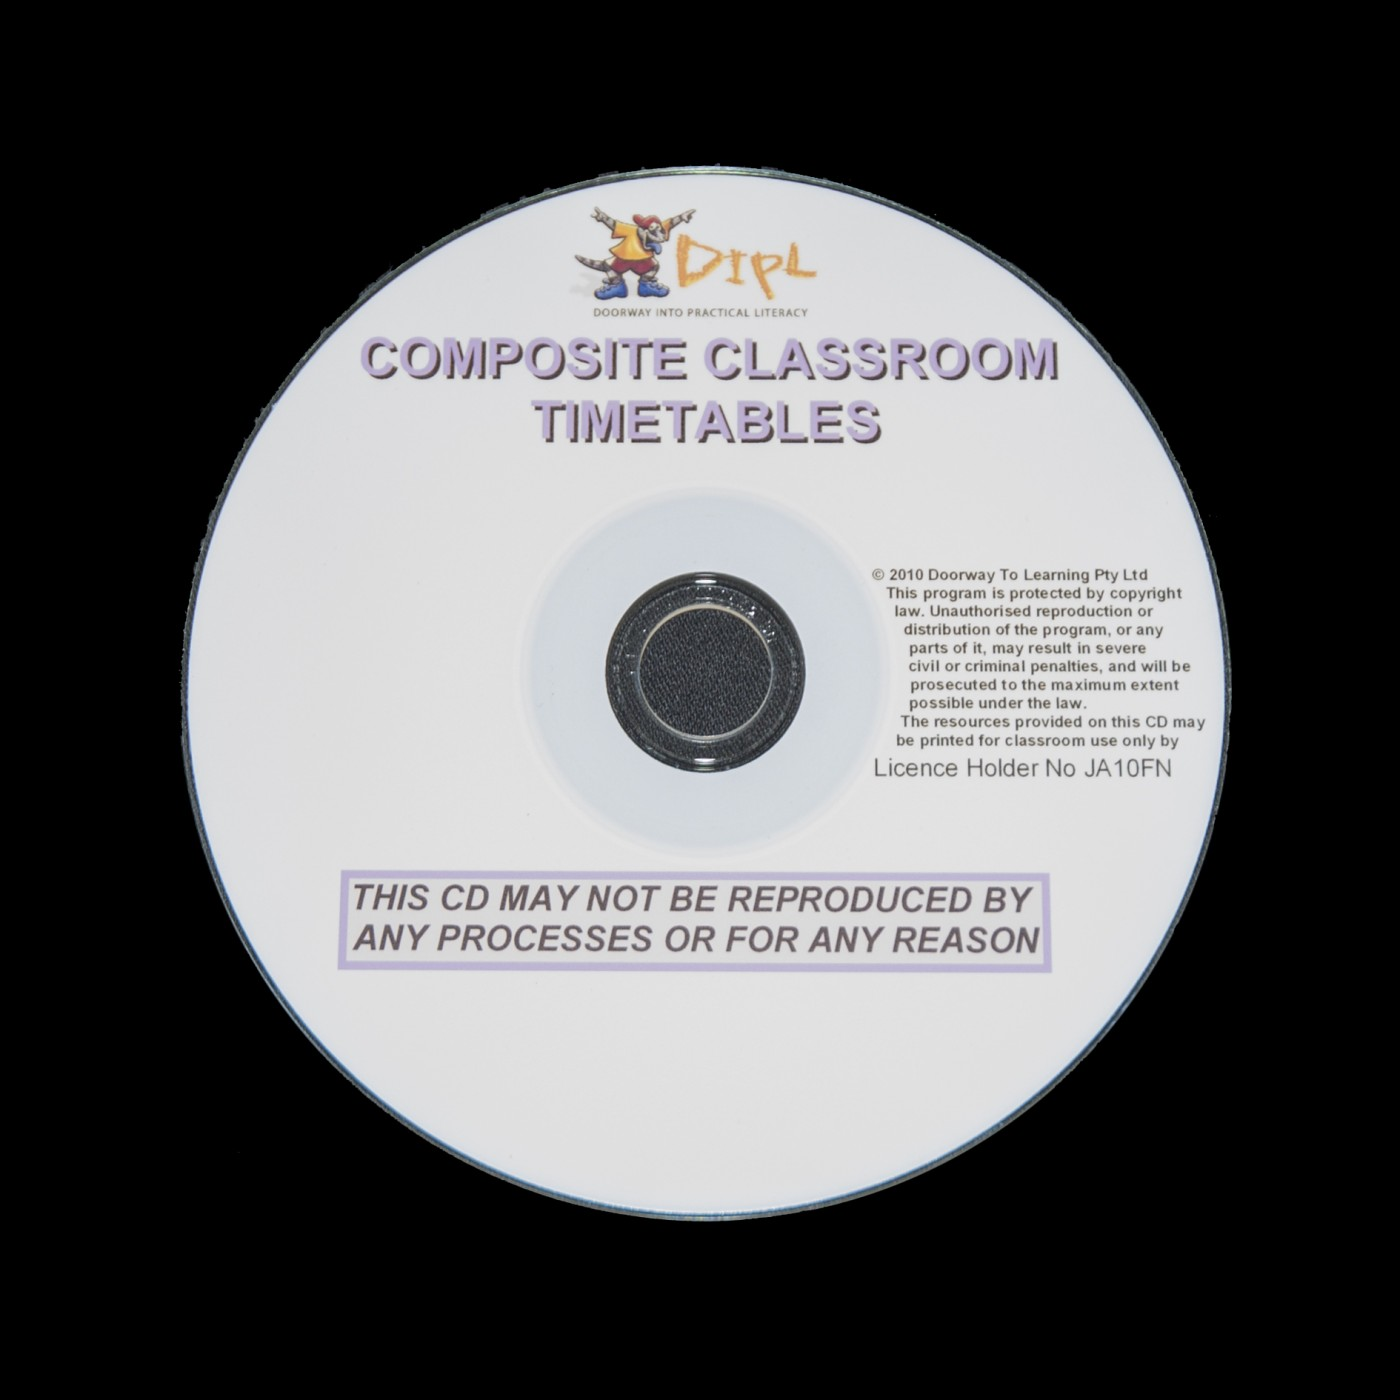 Composite Classroom Timetables on CD